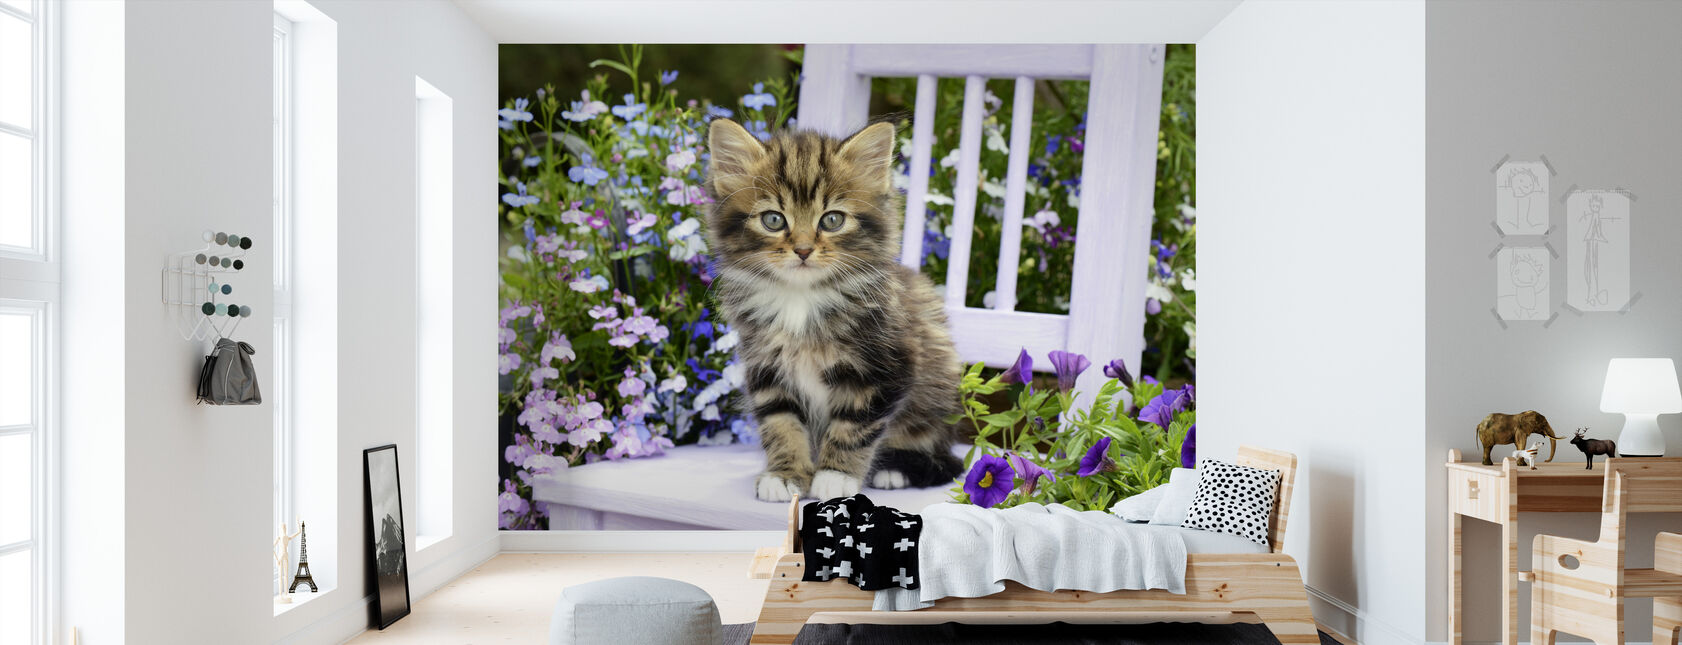 Outdoor Kitten - Behang - Kinderkamer